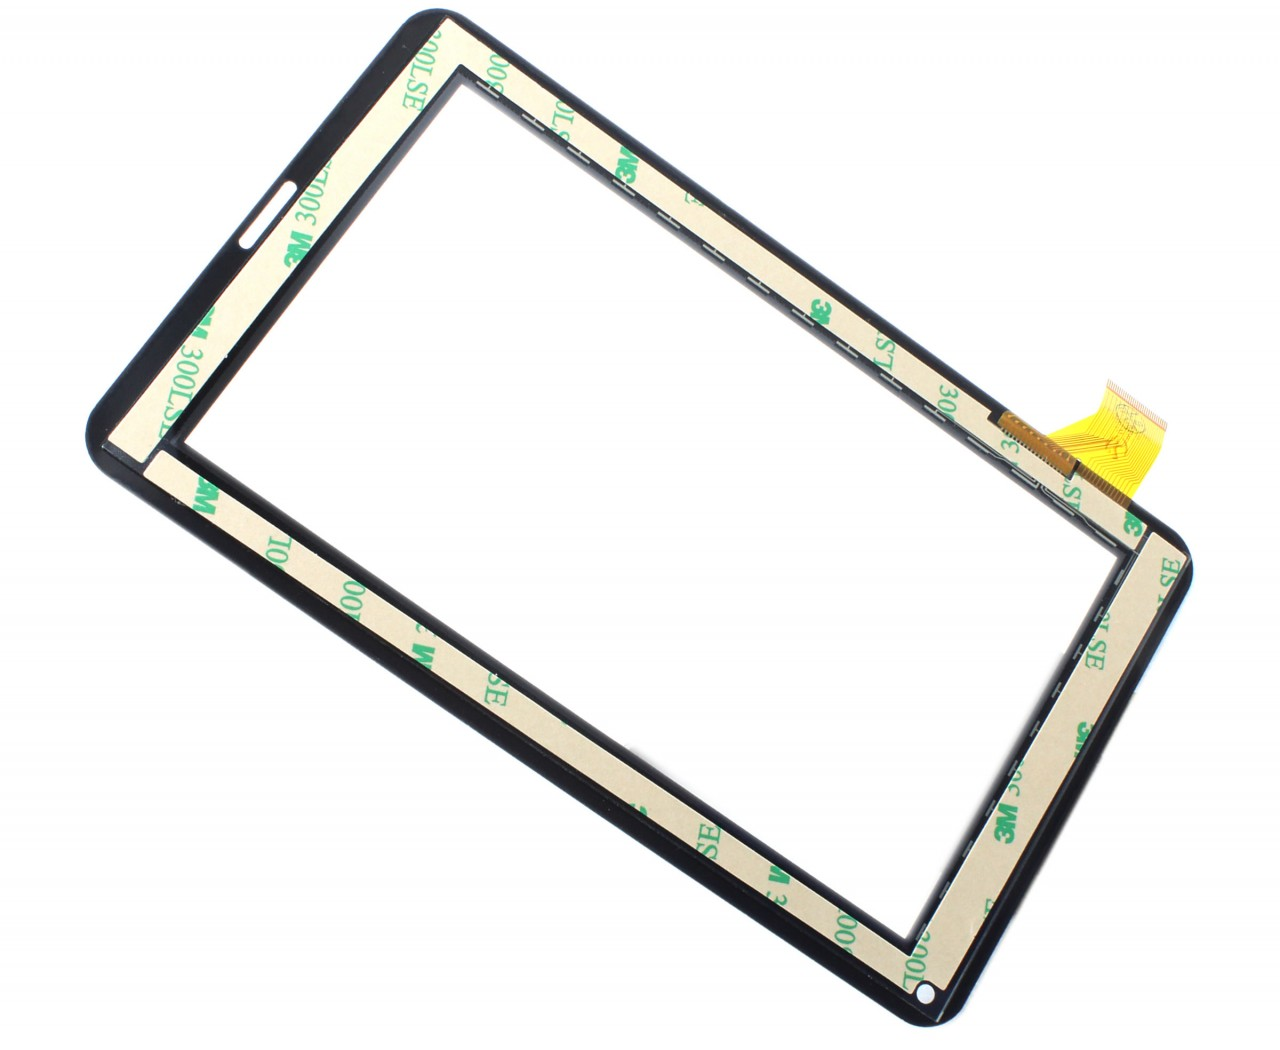 Touchscreen Digitizer eBoda Impresspeed E352 Geam Sticla Tableta imagine powerlaptop.ro 2021